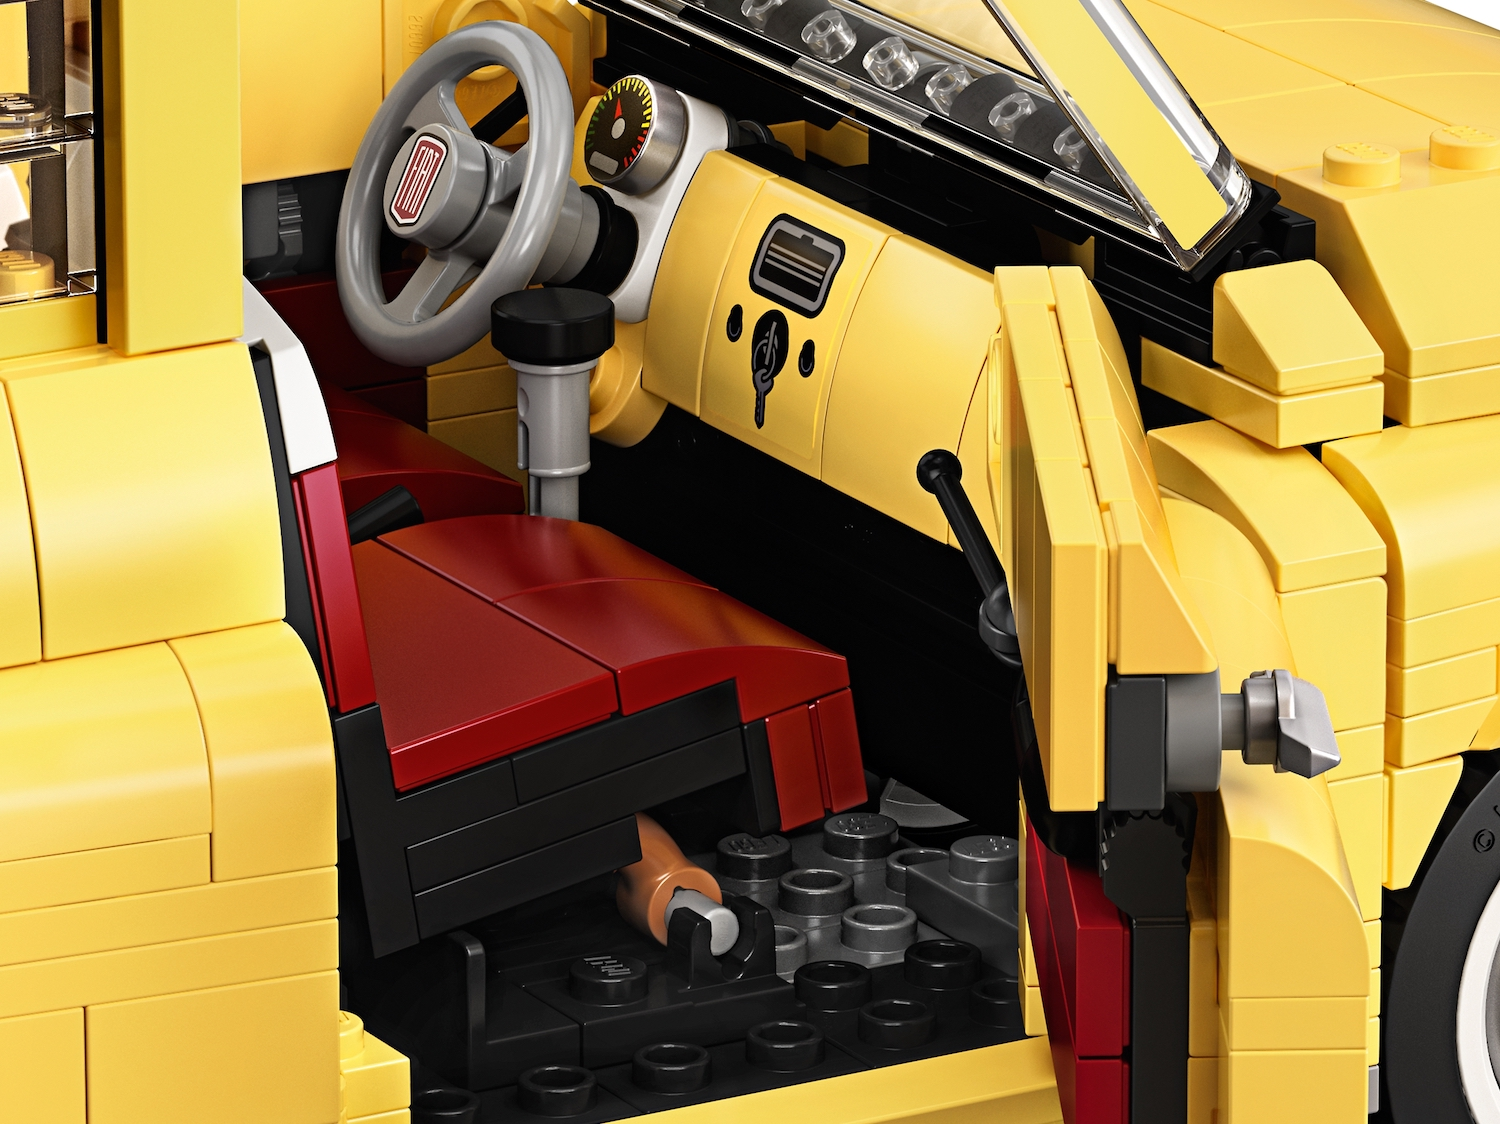 lego fiat 500 toy car open door interior detail